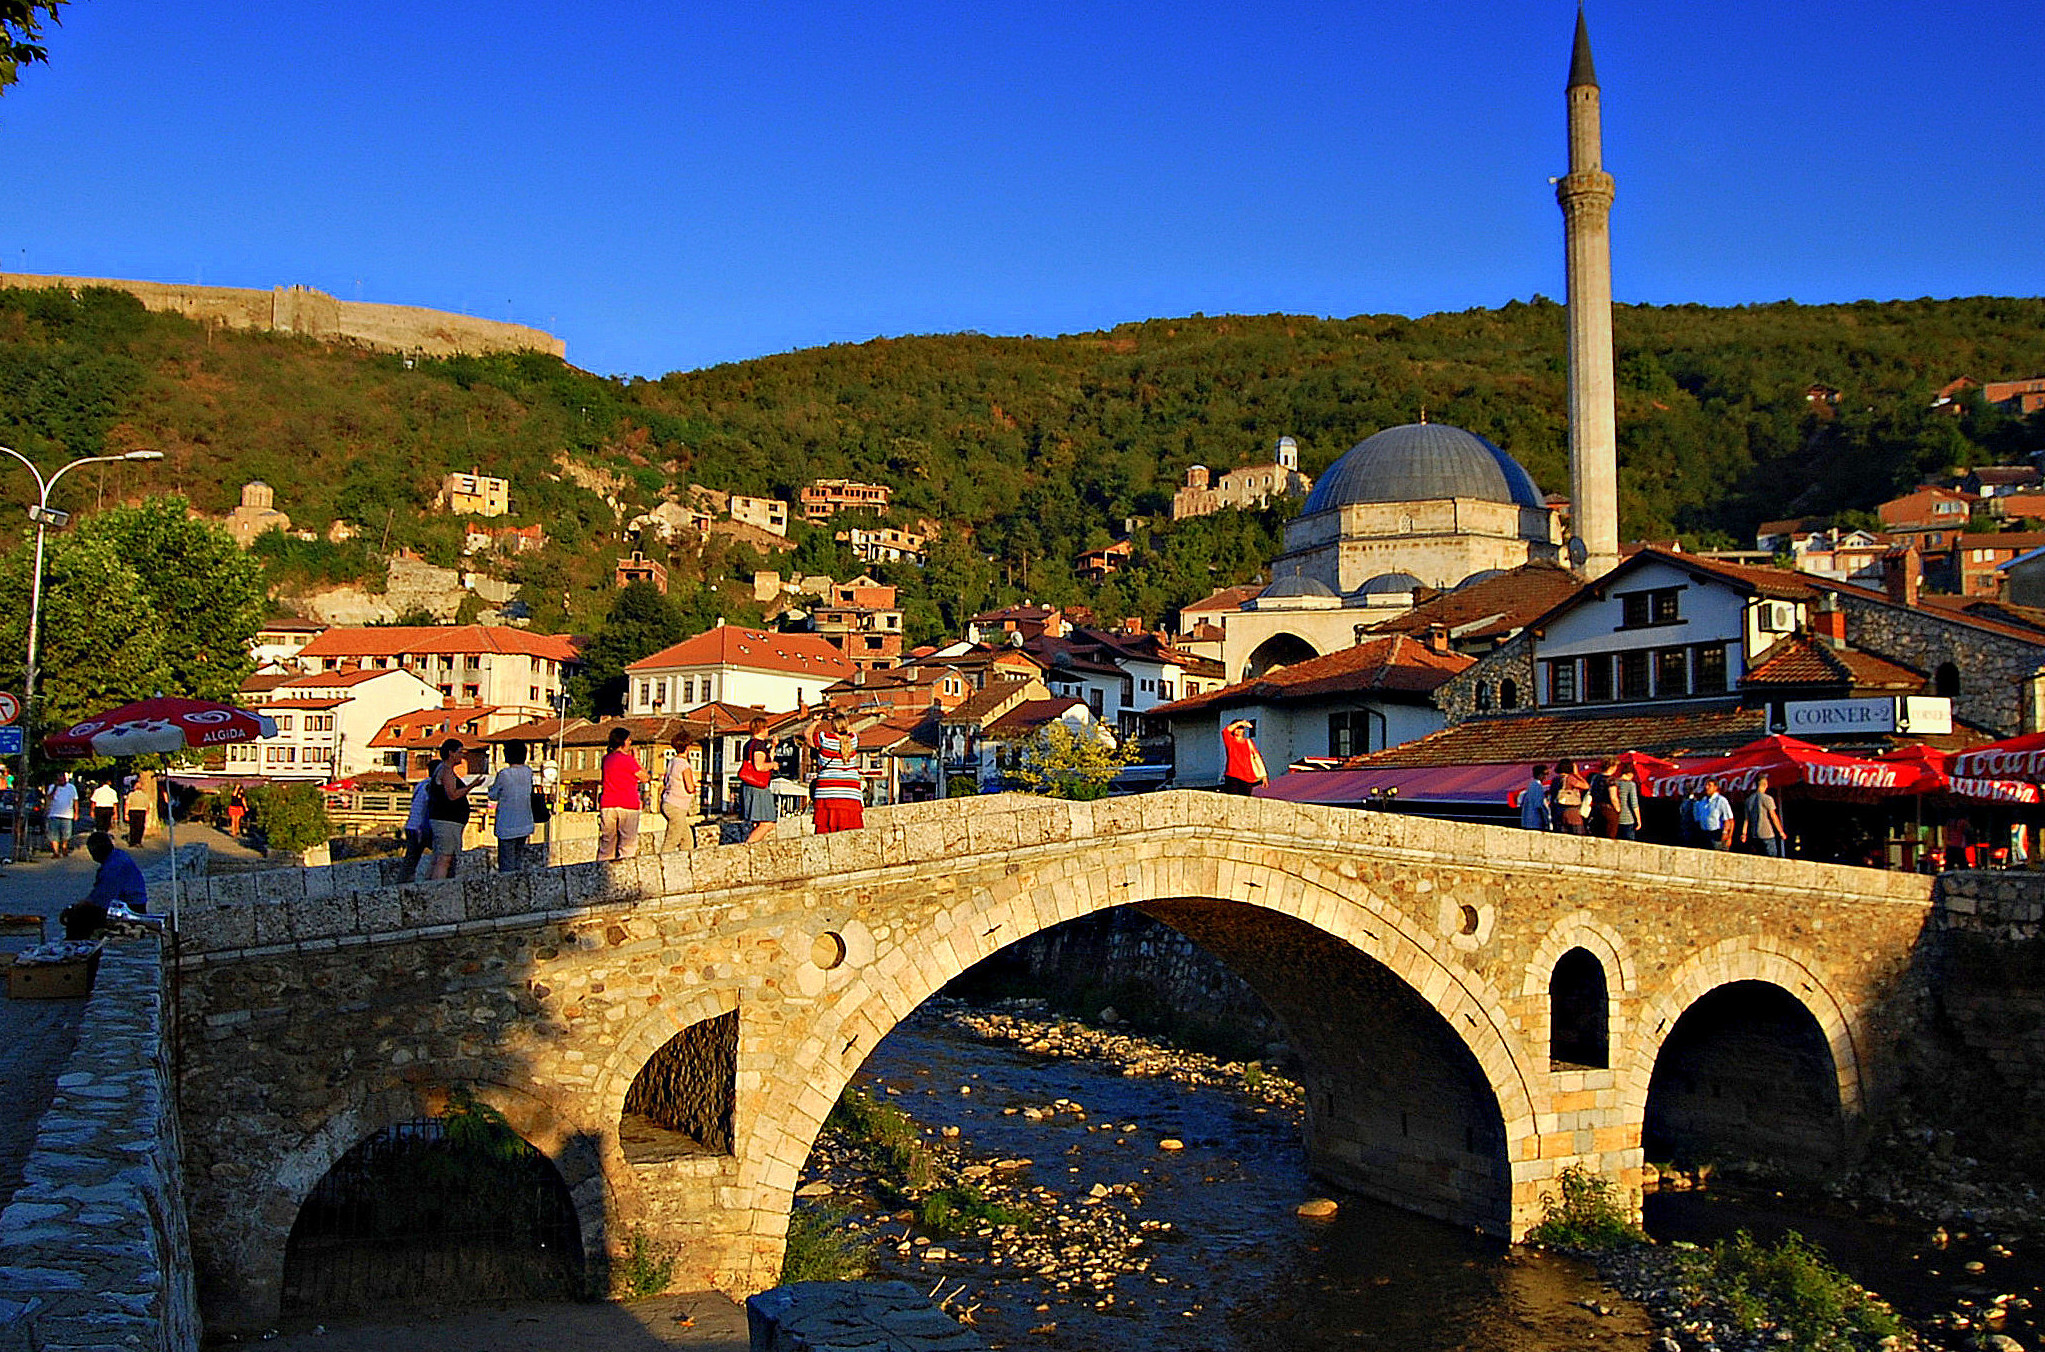 Www Hd Wallpaper Com Nature File Prizren Stone Bridge Sinan Pasha Mosque And City